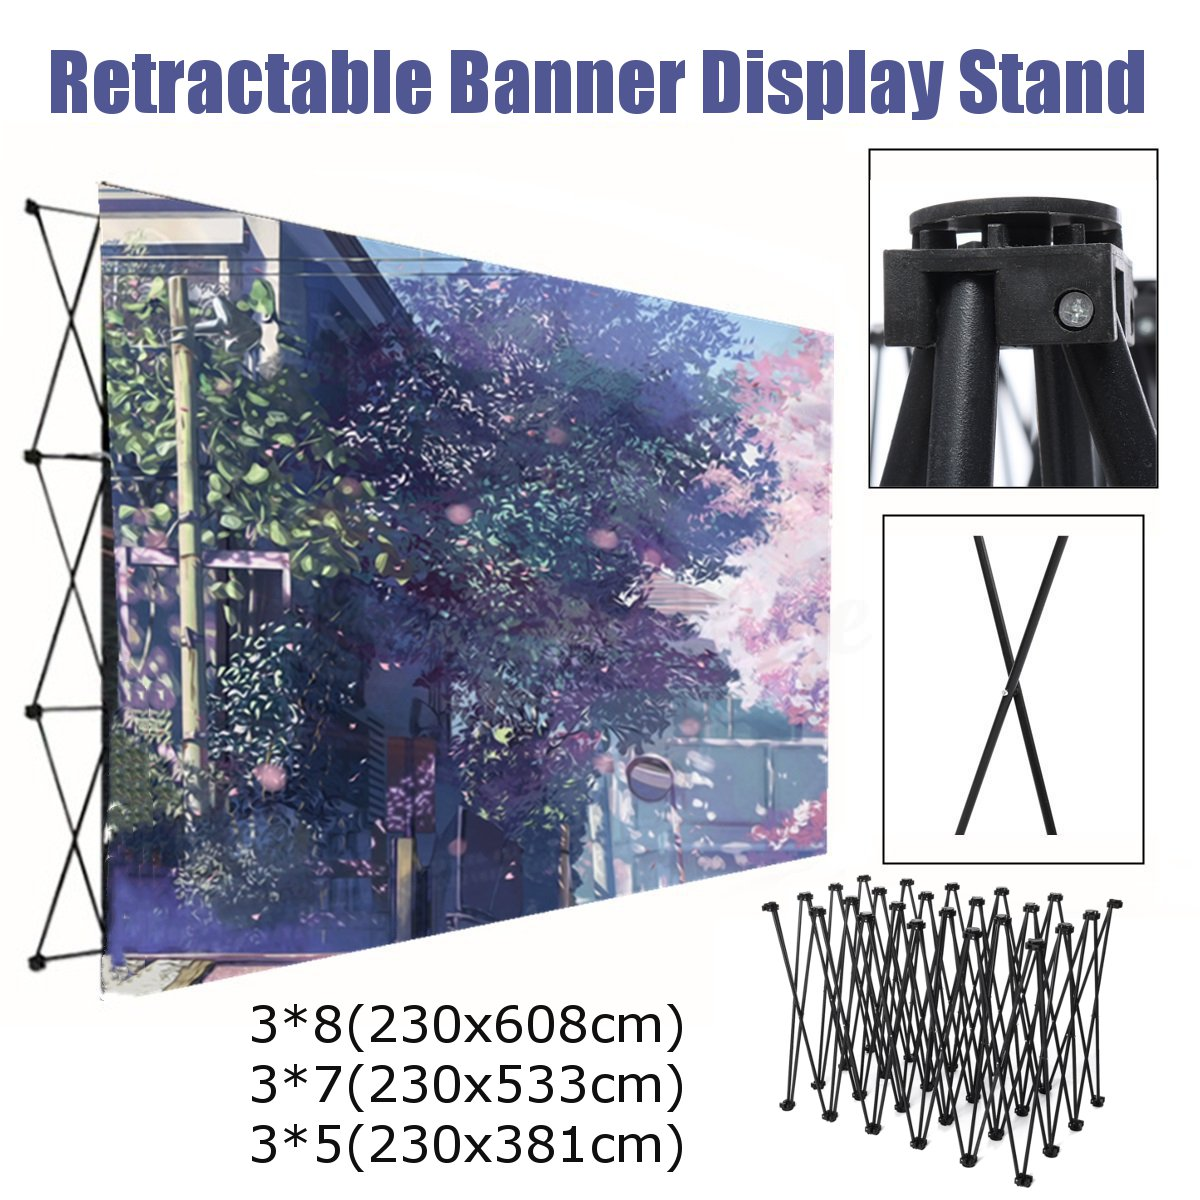 Folding Iron Stand Wall Frame Wedding Backdrop Decor Retractable Banner Spray Painting Display Show Booth Advertising Wall Kit